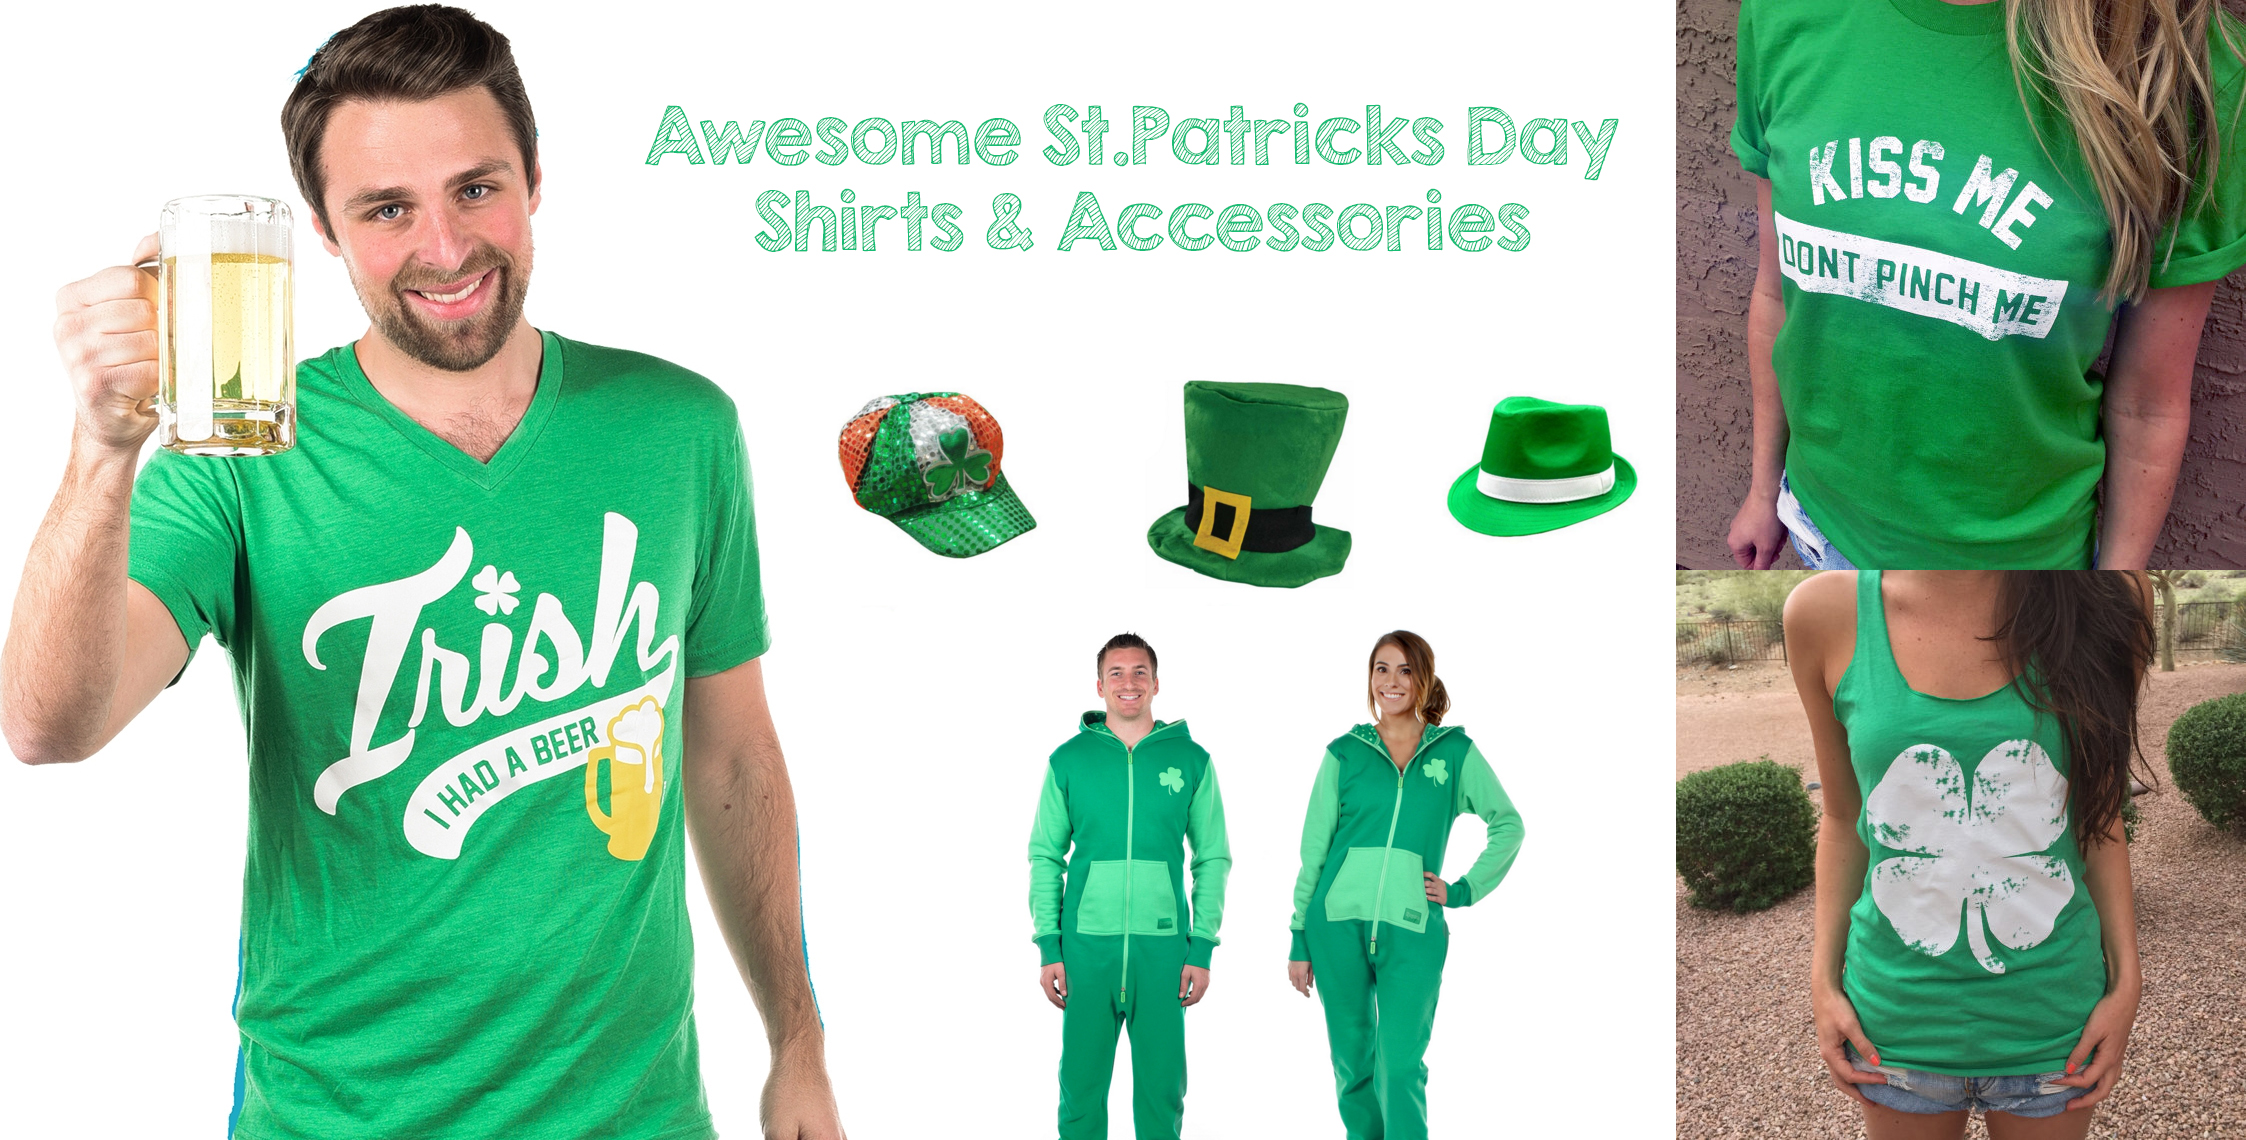 f65be290 Bottoms Up! Awesome St.Patricks Day Shirts & Accessories - Walyou